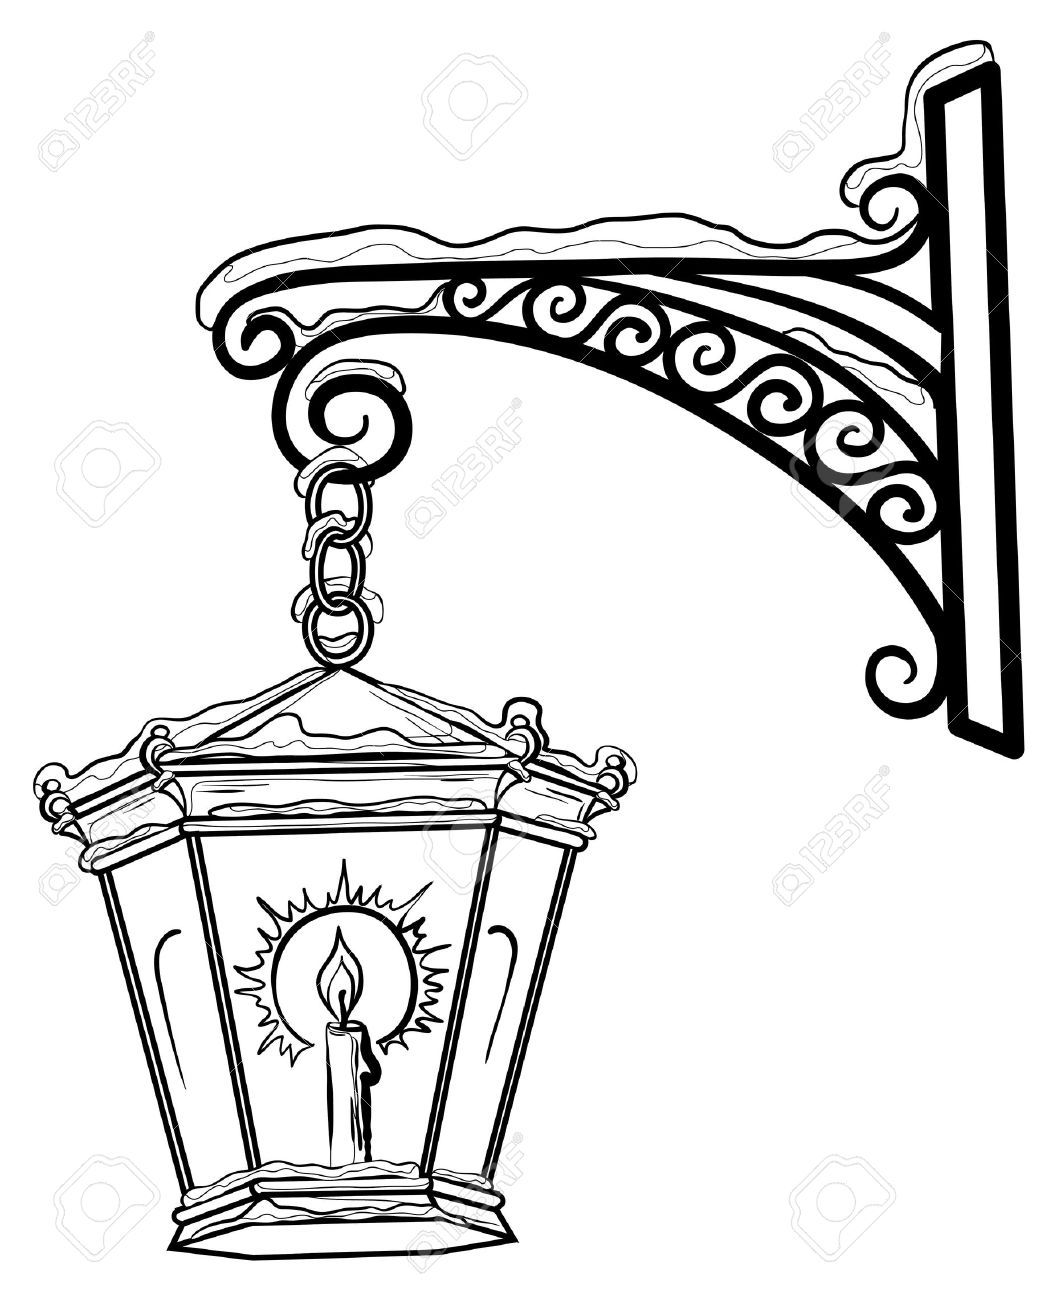 Street Lamp Stock Illustrations, Cliparts And Royalty Free Street ... for Street Light Drawing  103wja